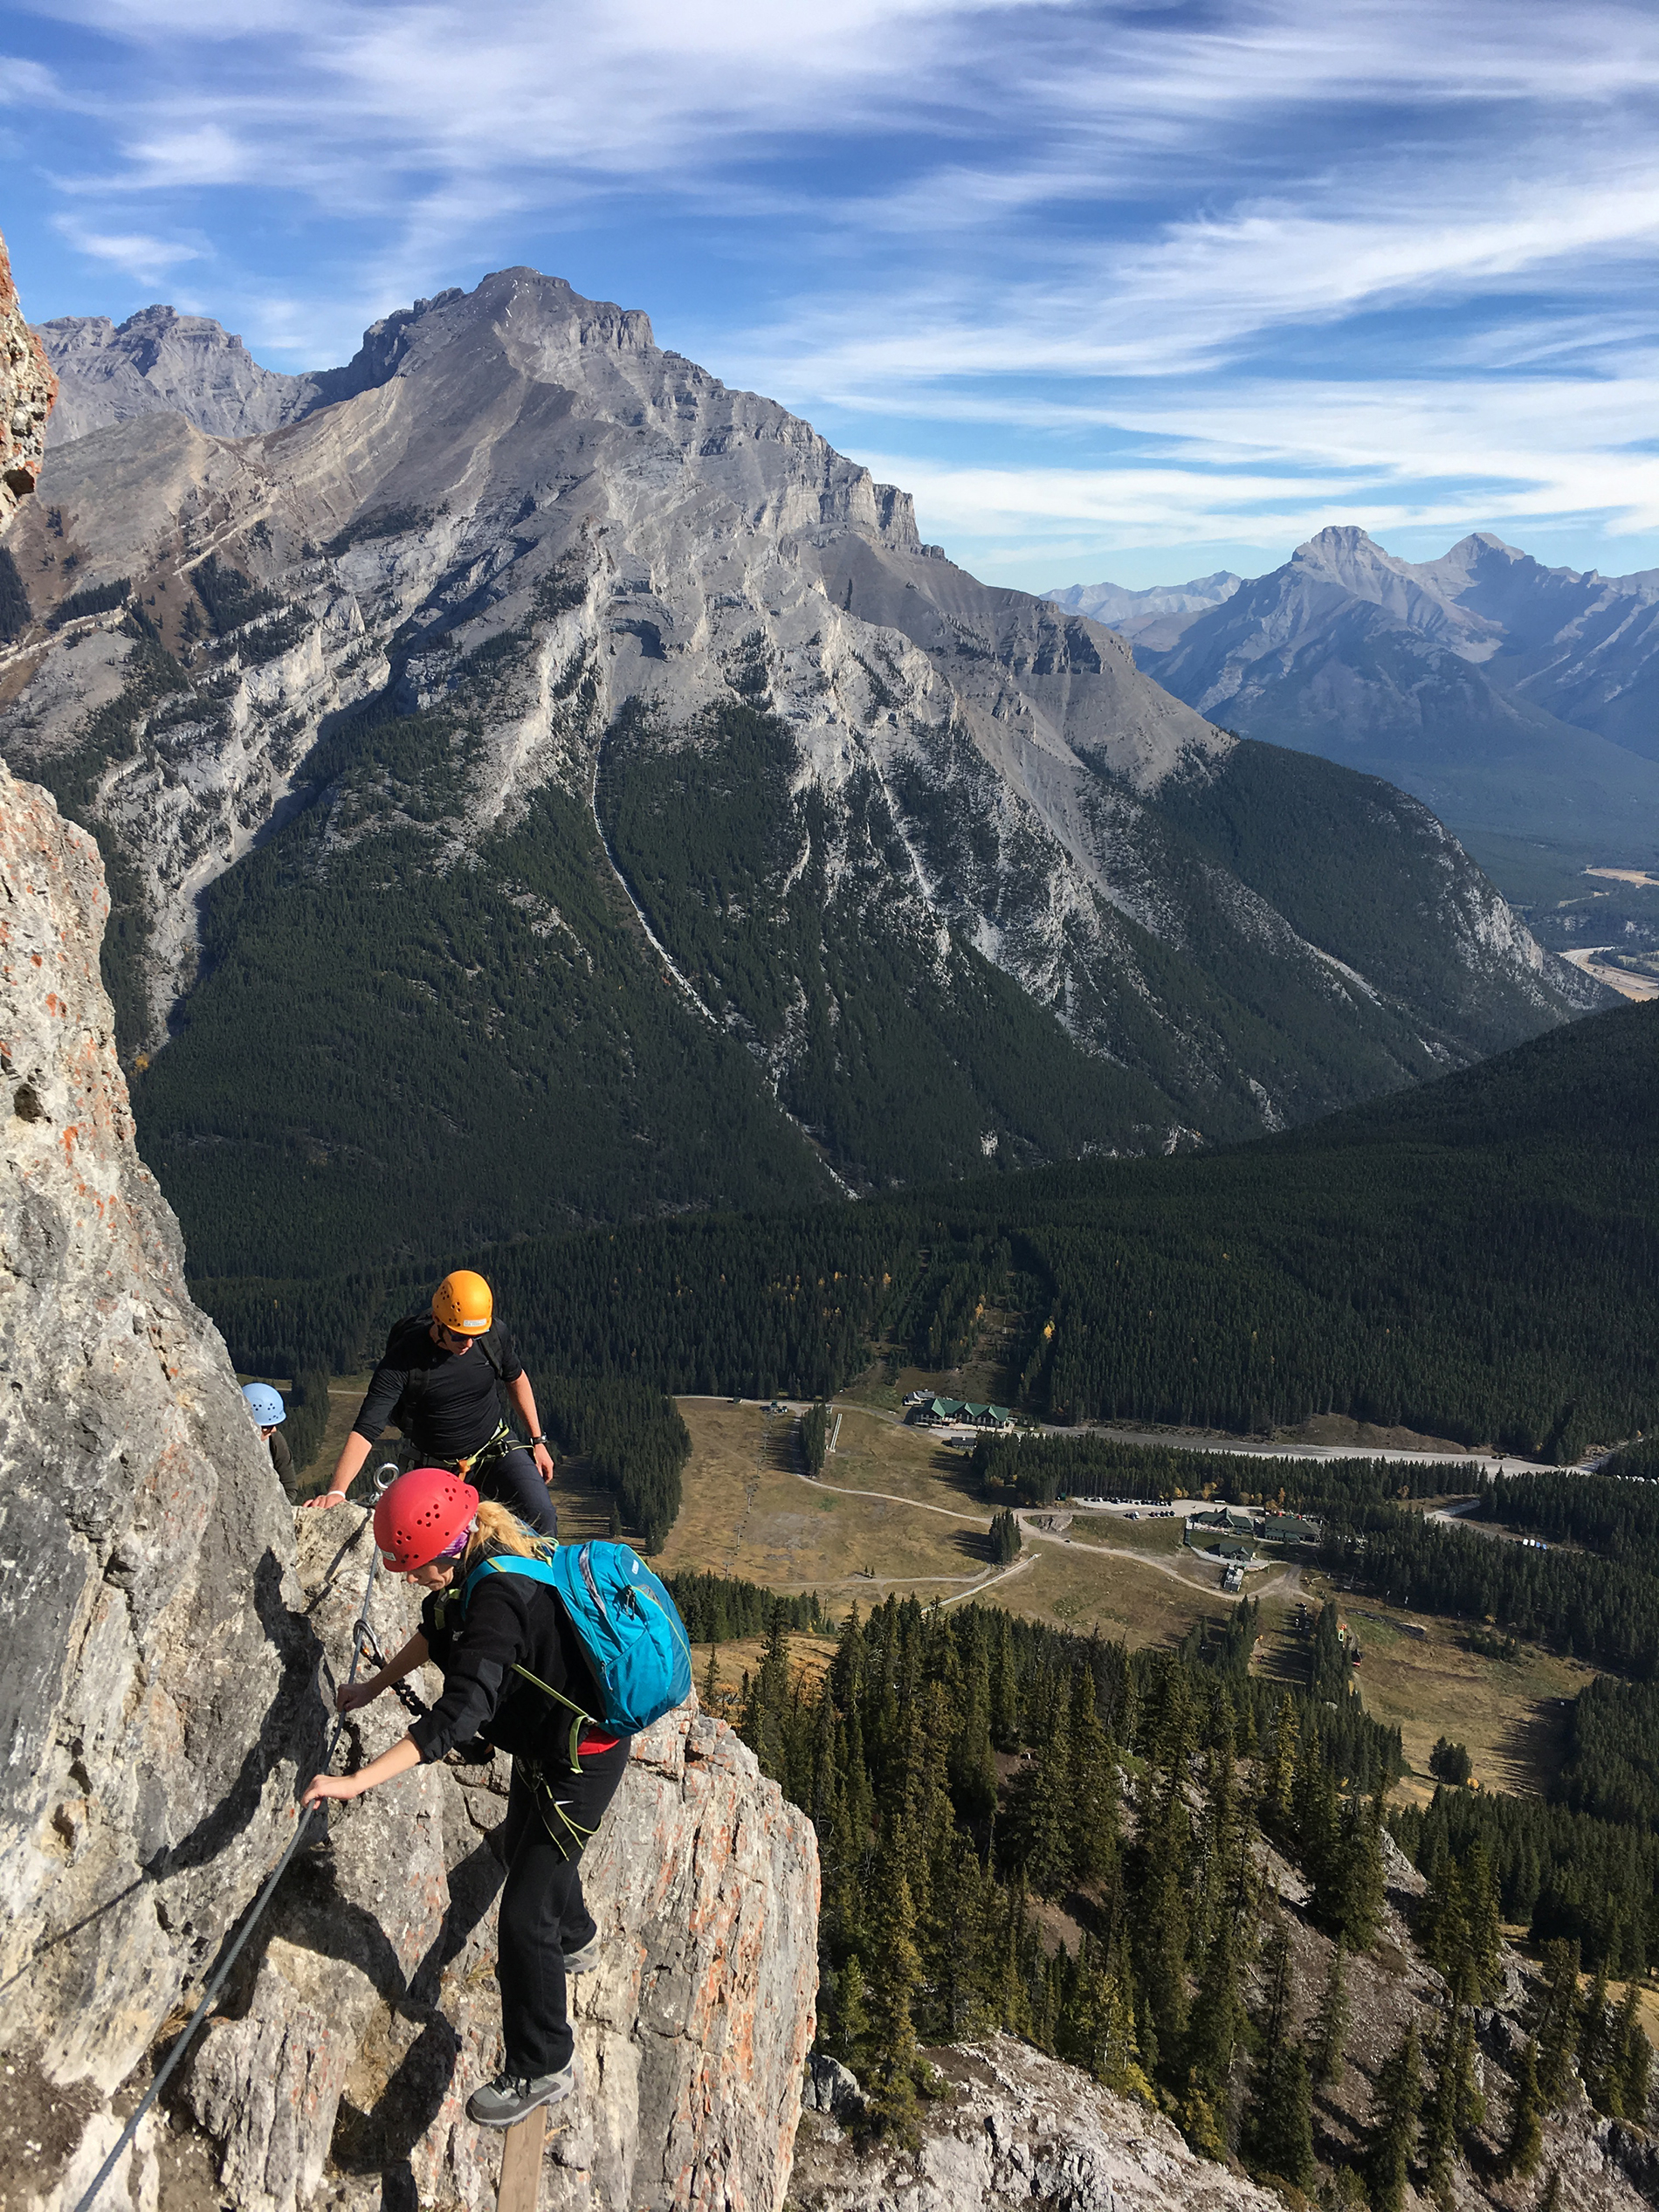 Finding footholds on the side of a mountain in Banff while traversing the Via Ferrata.